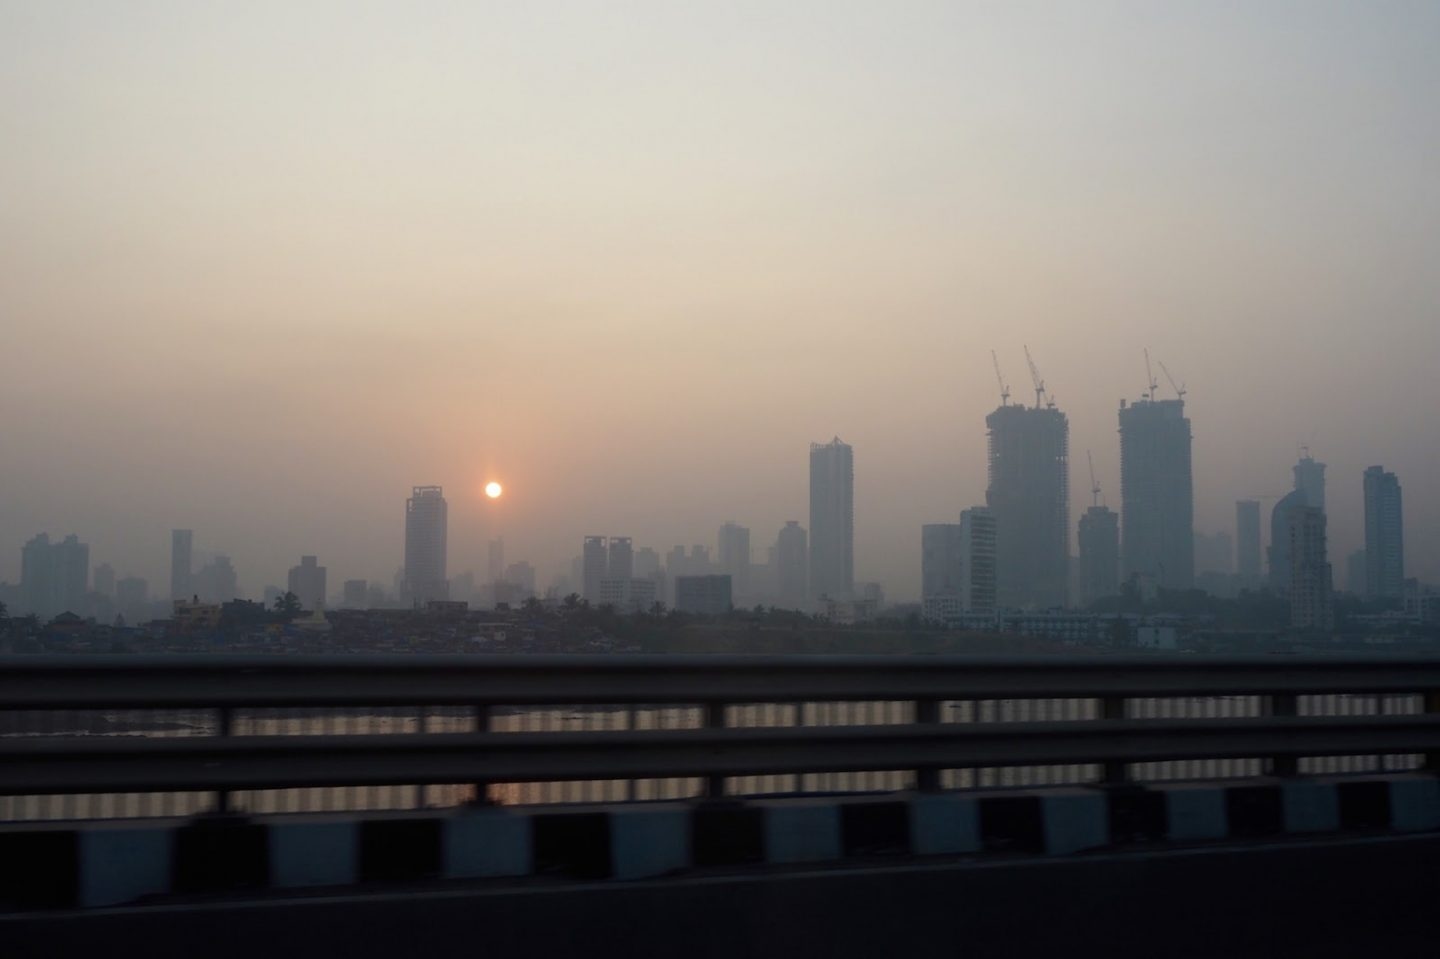 Sunrise Mumbai skyline